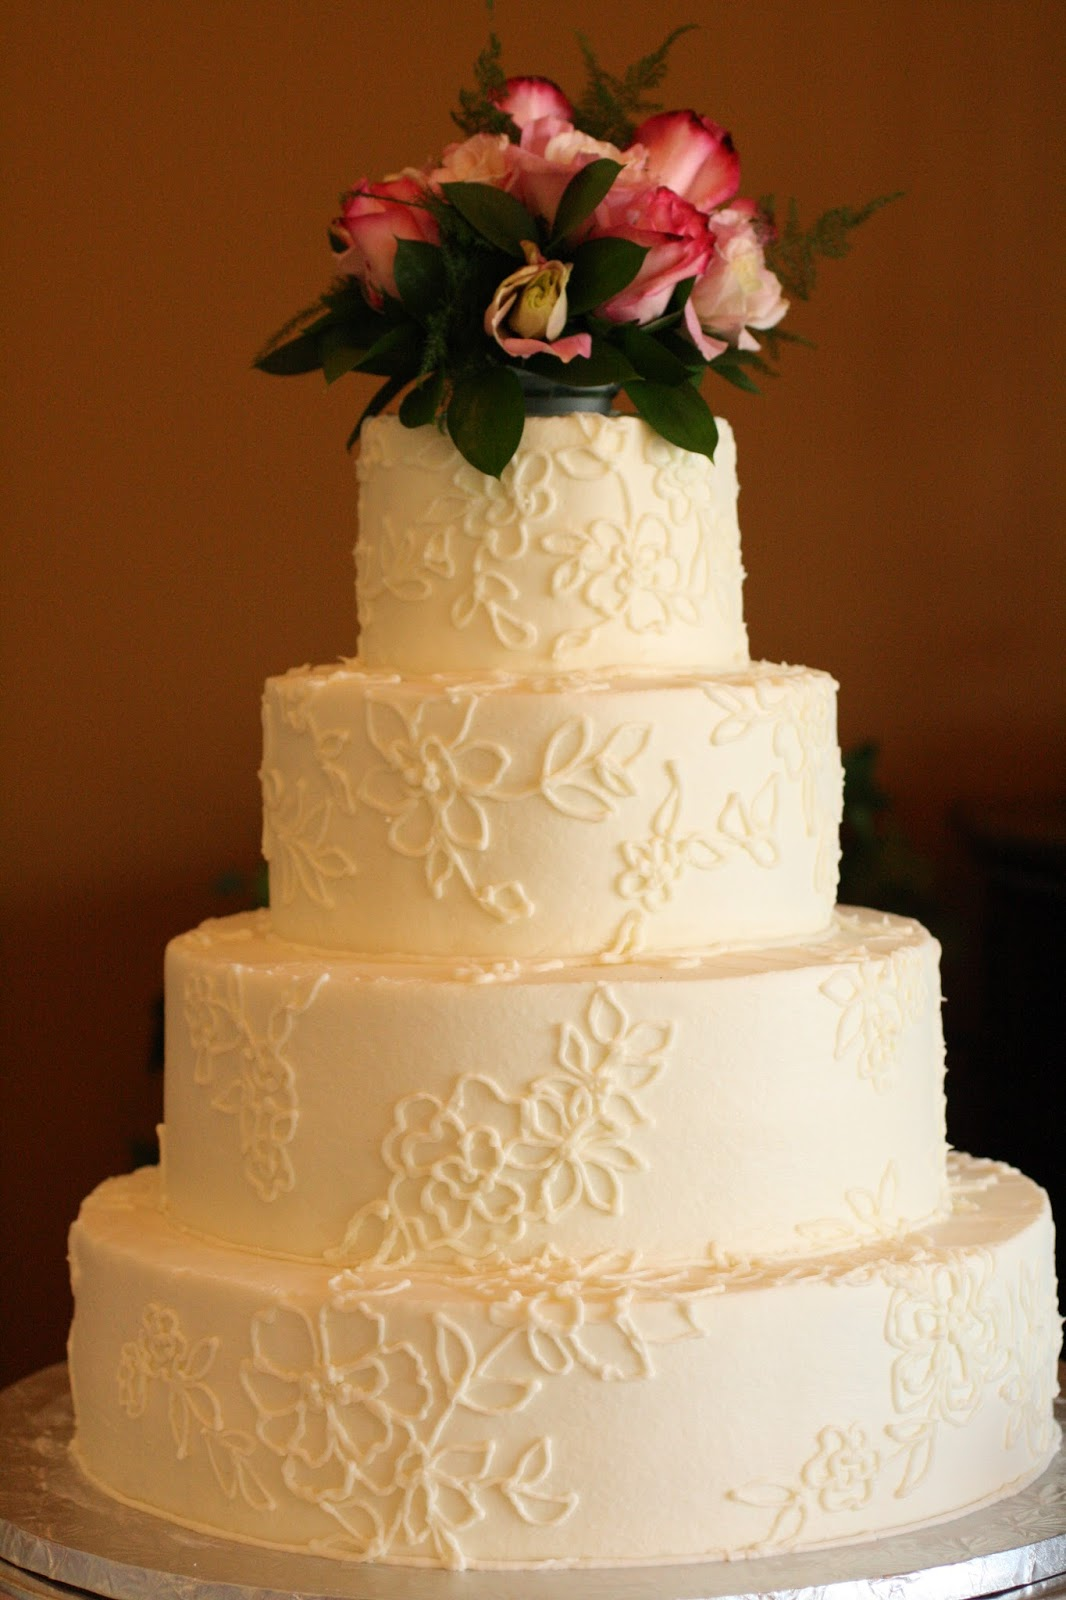 A Cake To Remember VA Piped Lace Wedding Cakes